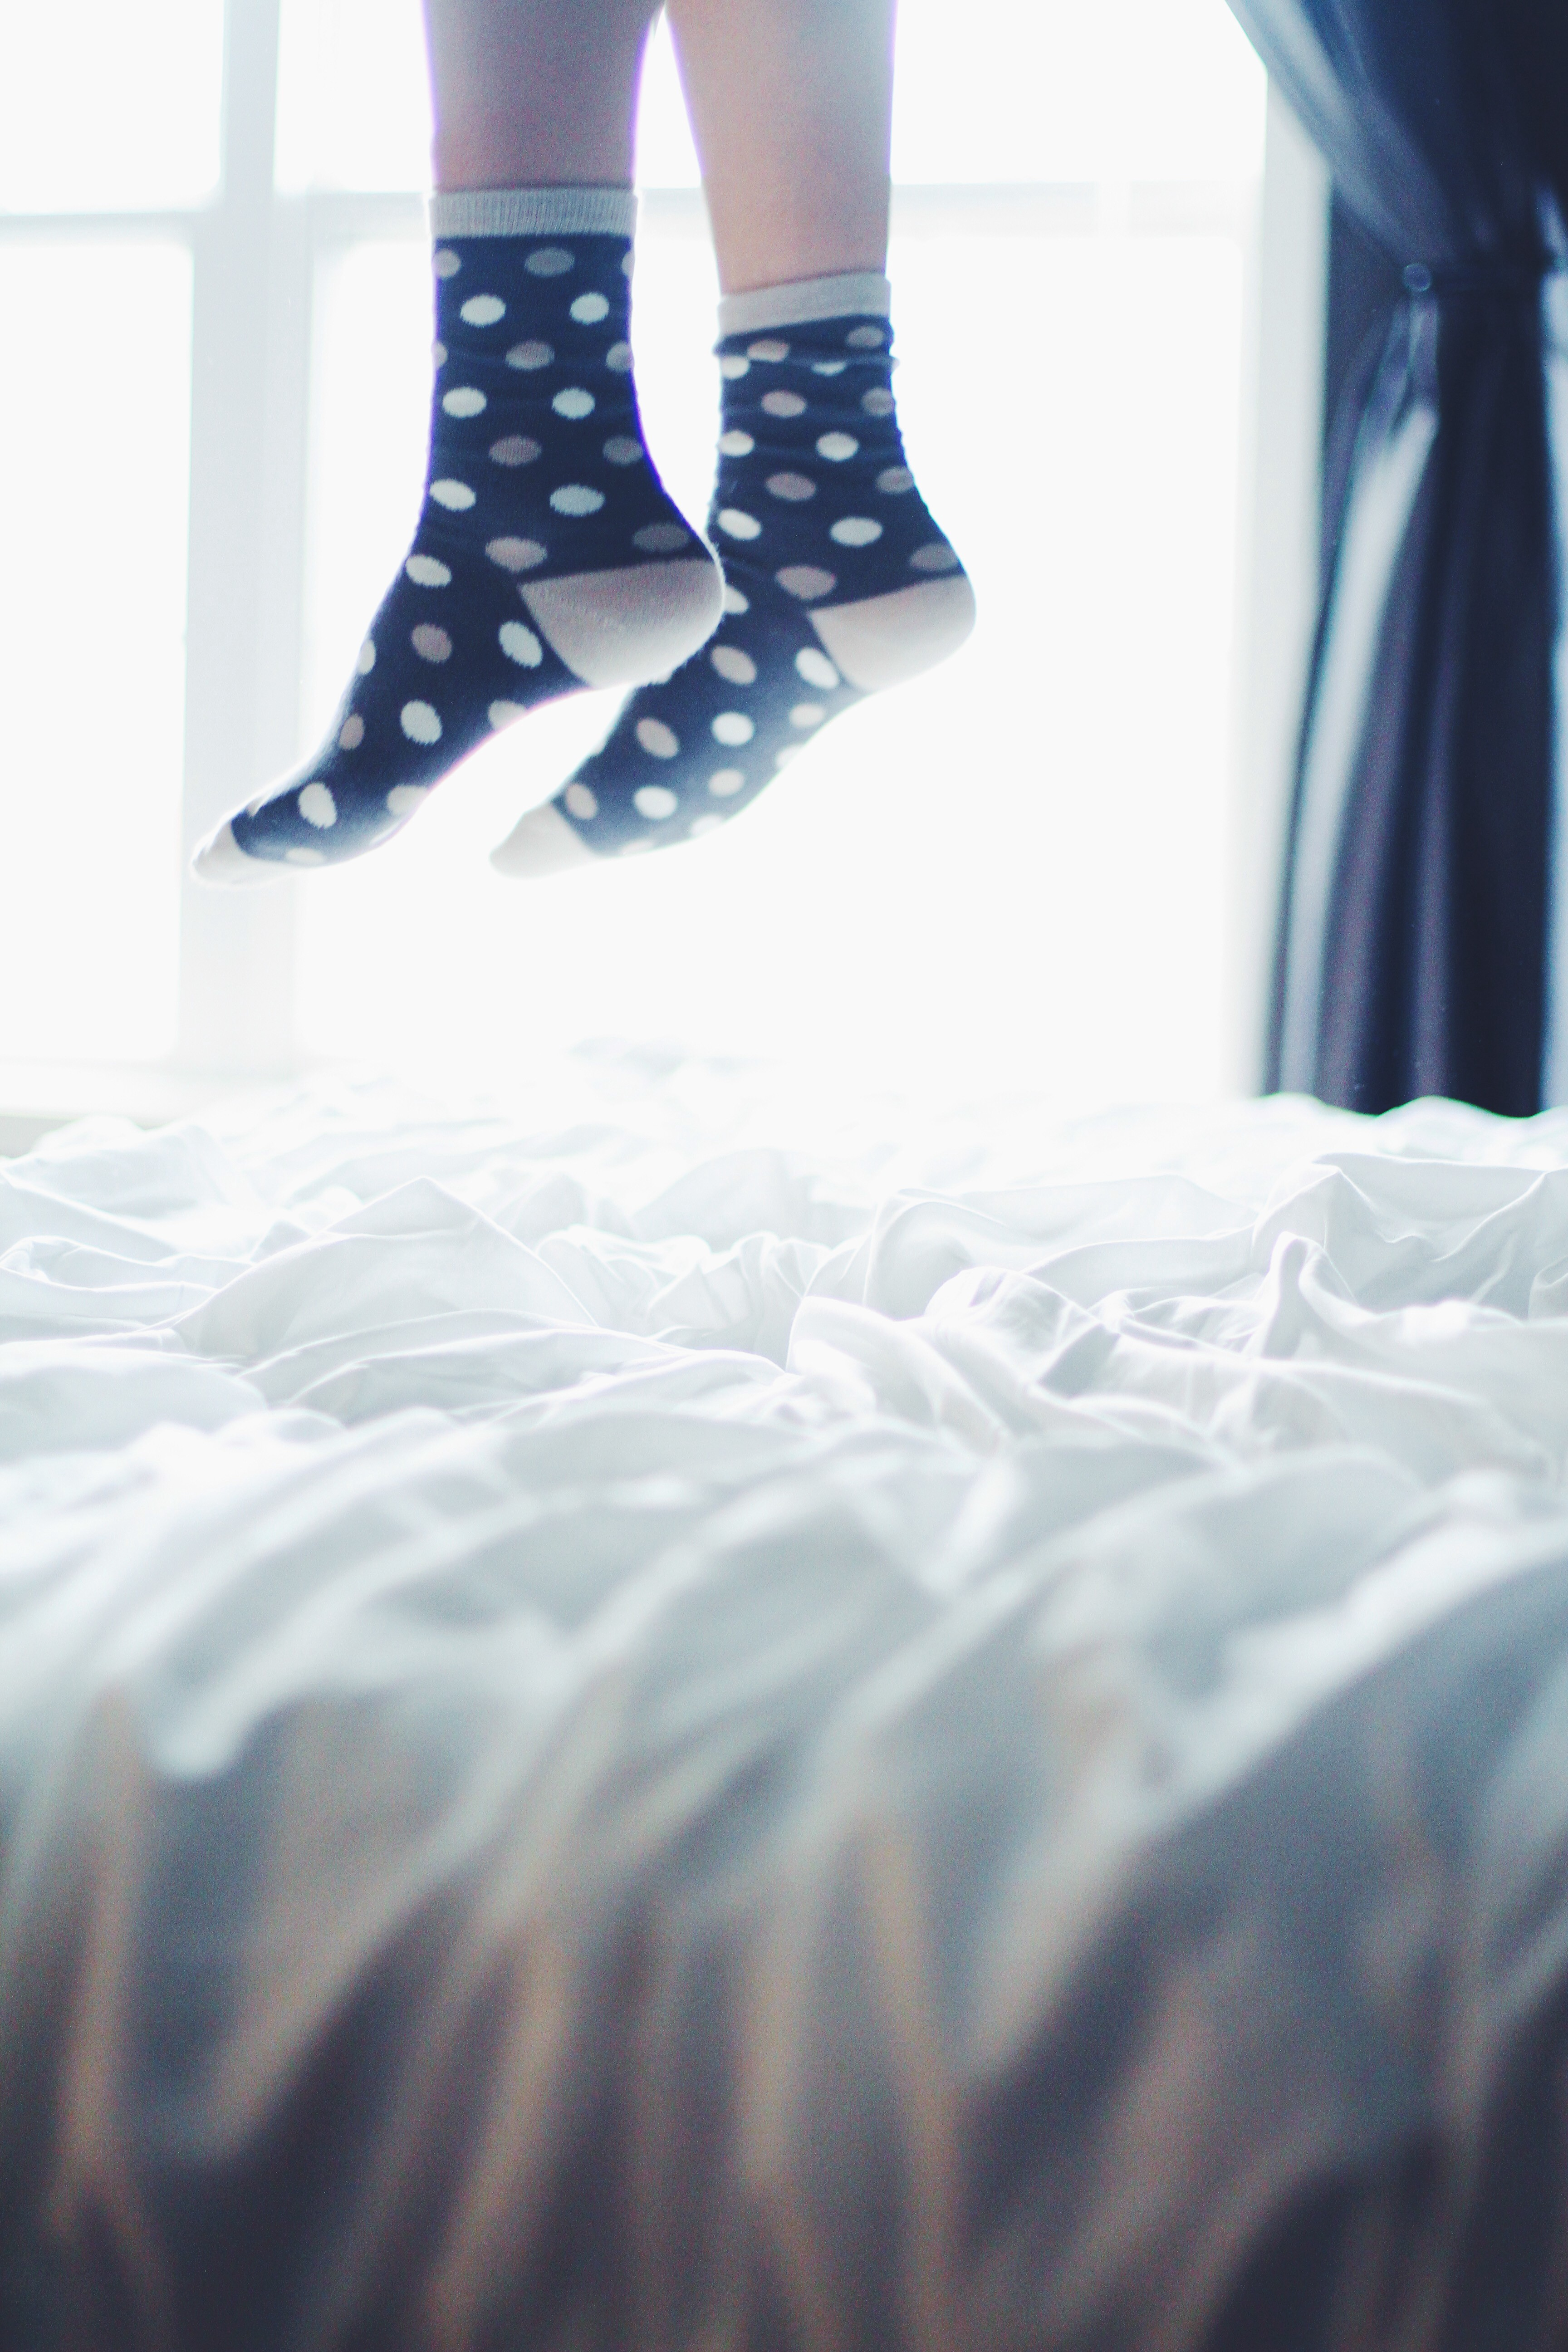 spotted socks jumping on a bed